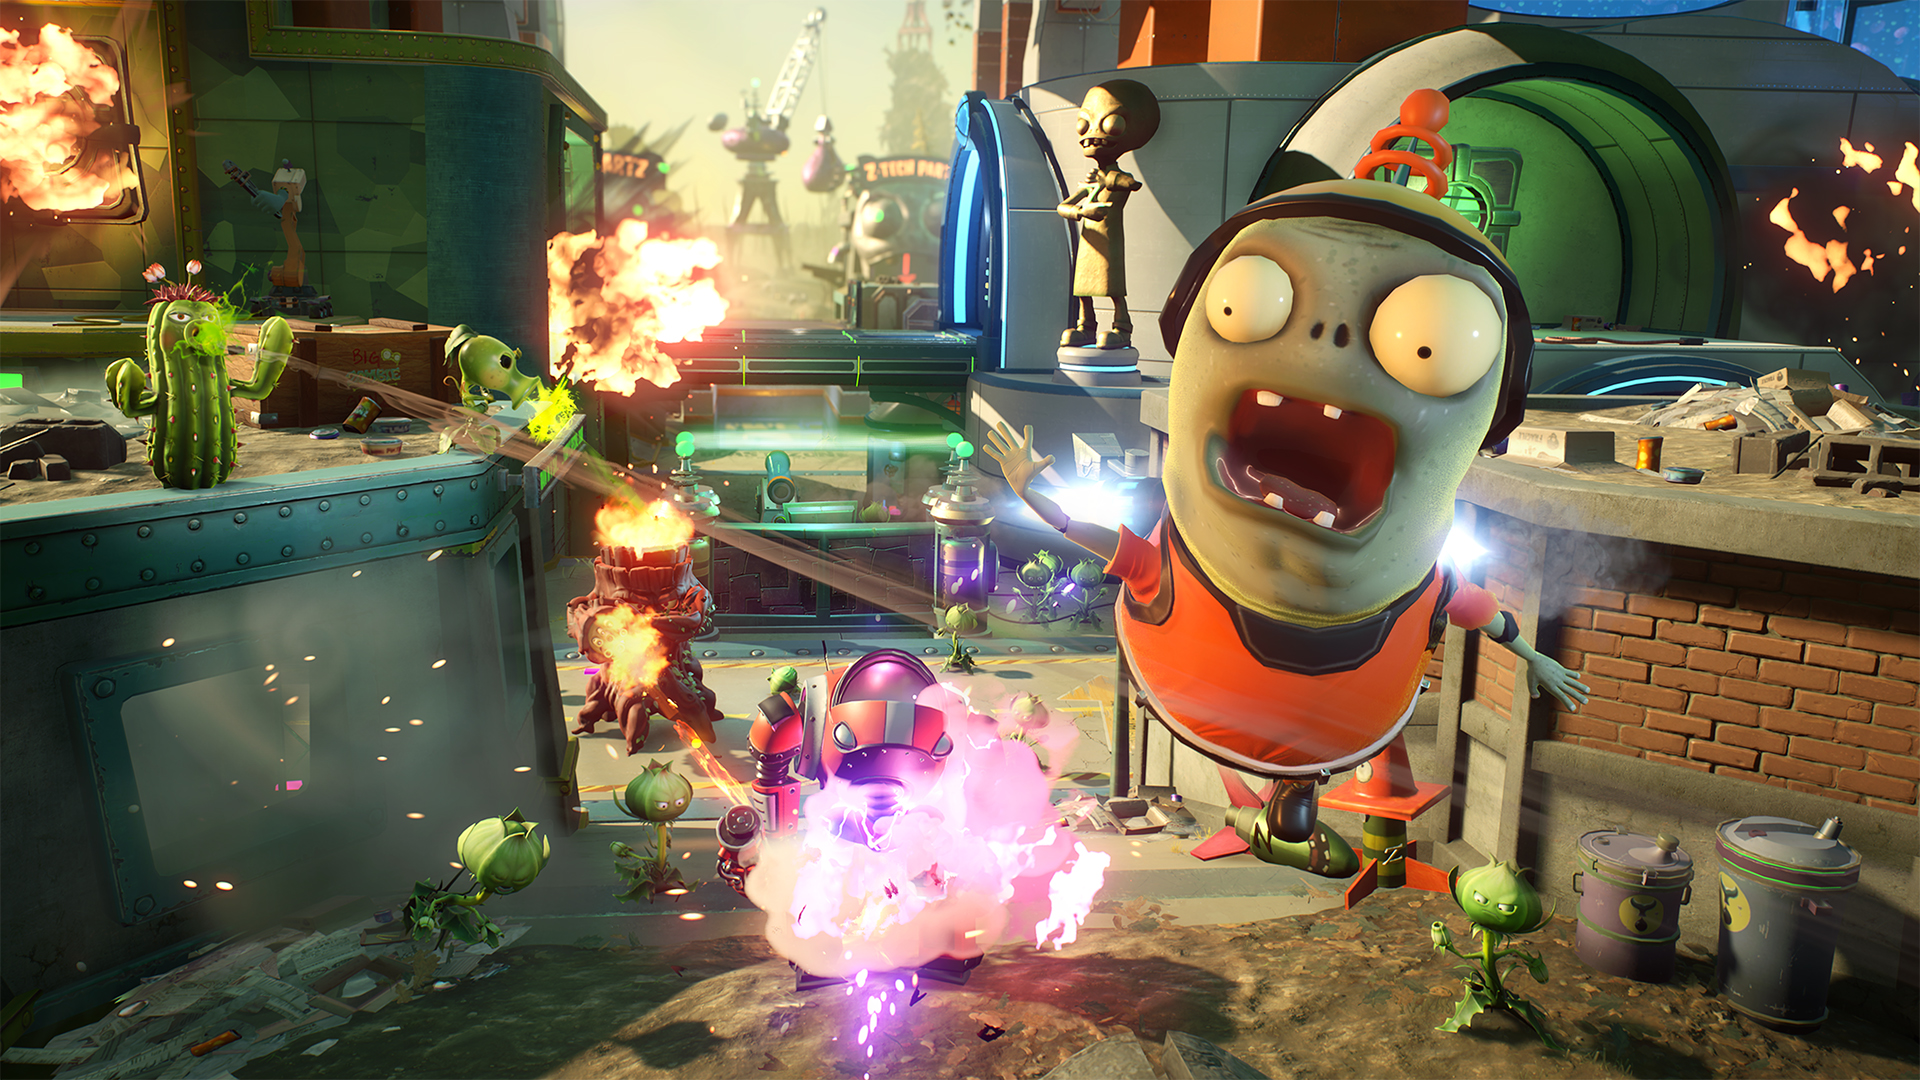 Plants vs zombies garden warfare 2 xbox one review more Plants vs zombies garden warfare 2 event calendar